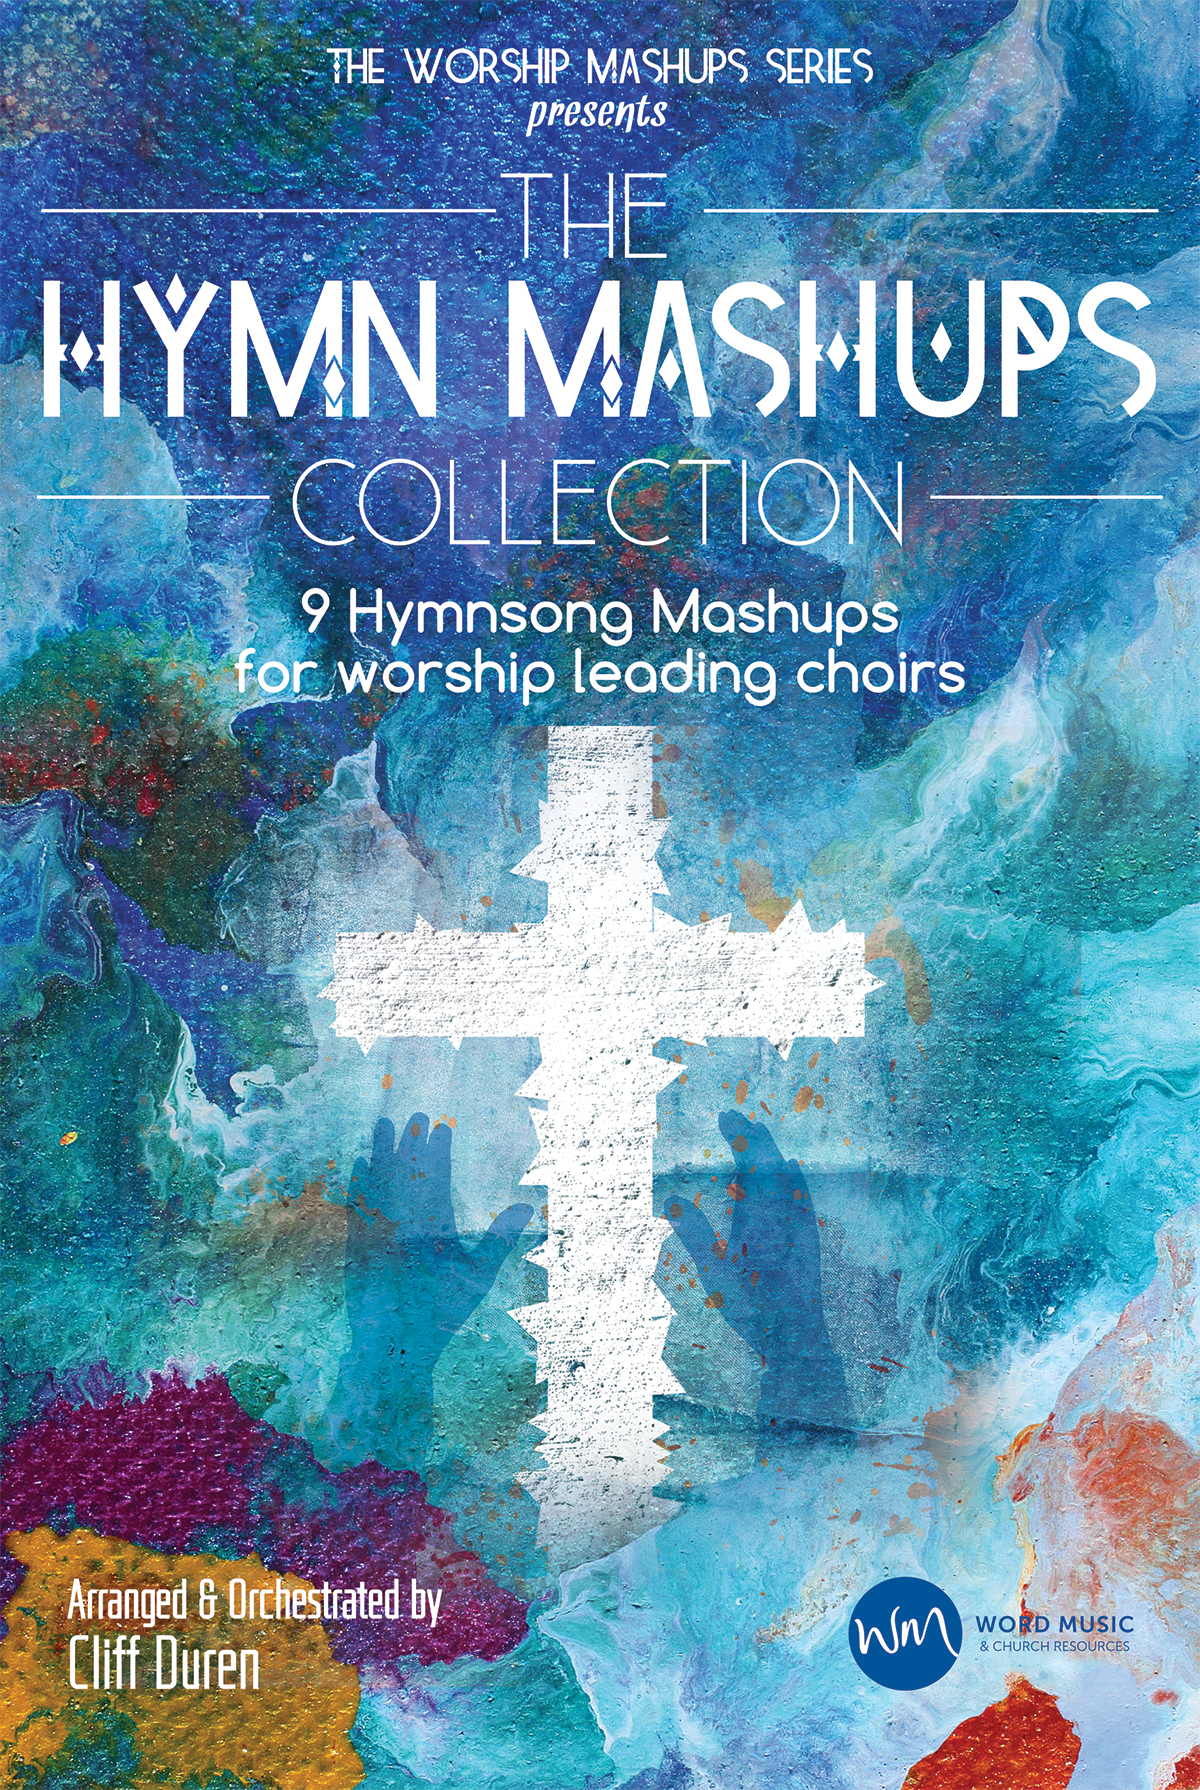 The Hymn Mashups Collection